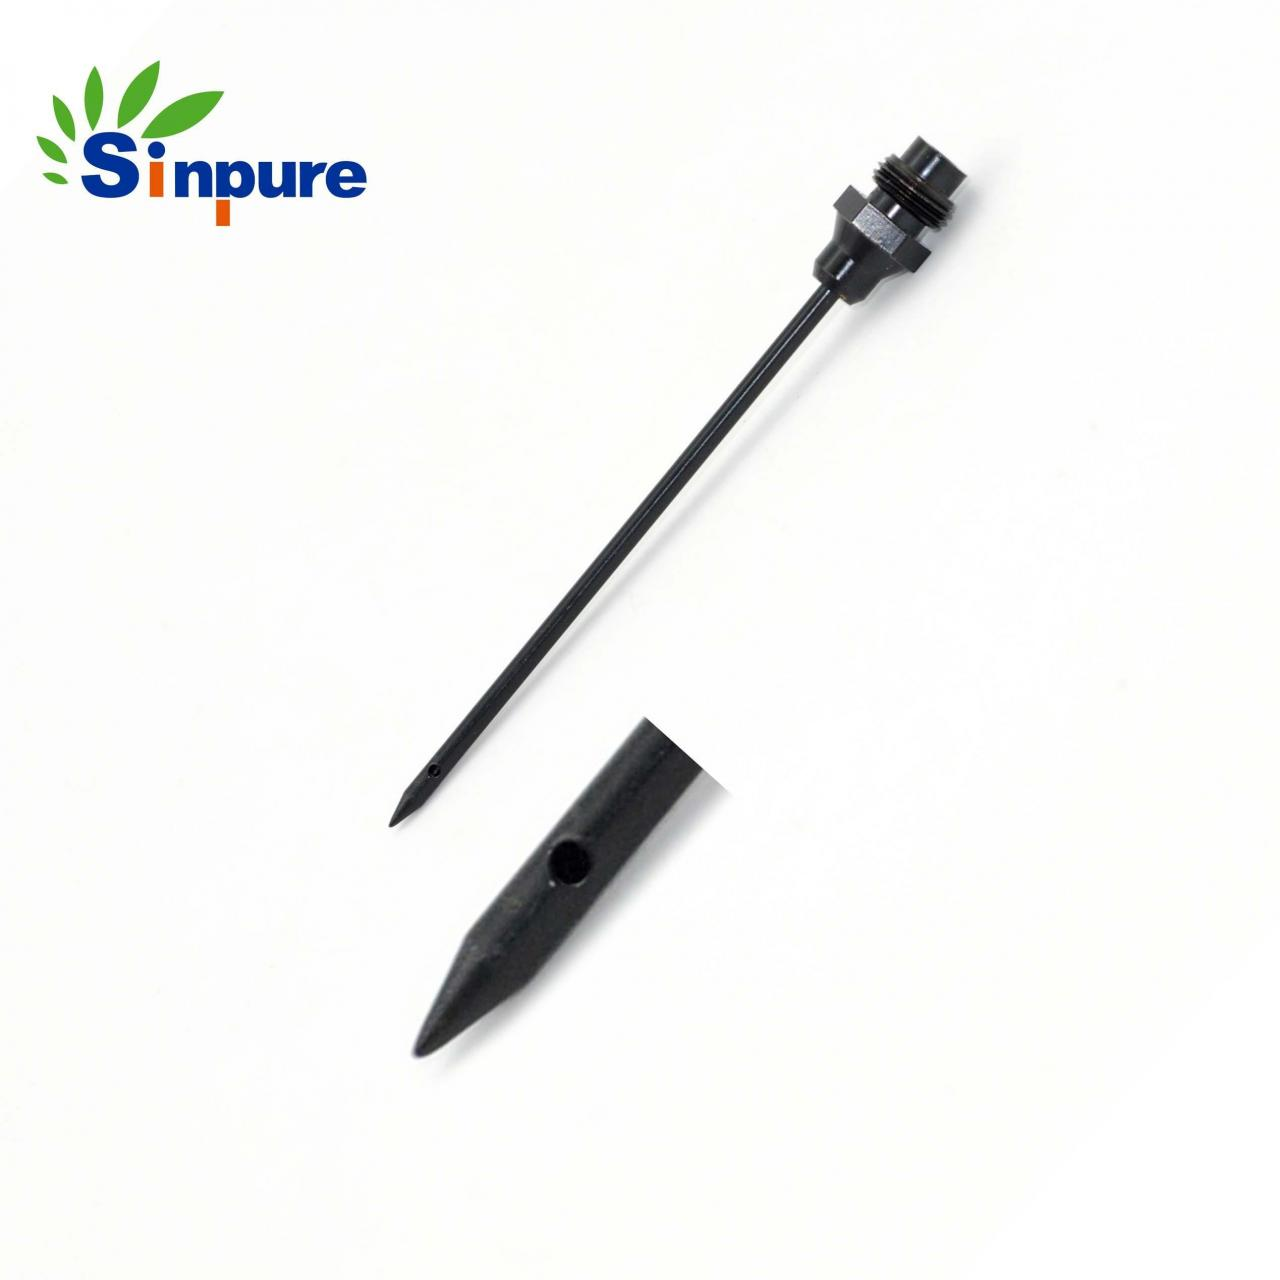 Sinpure Stainless steel needle cannula with quincke /pencil point